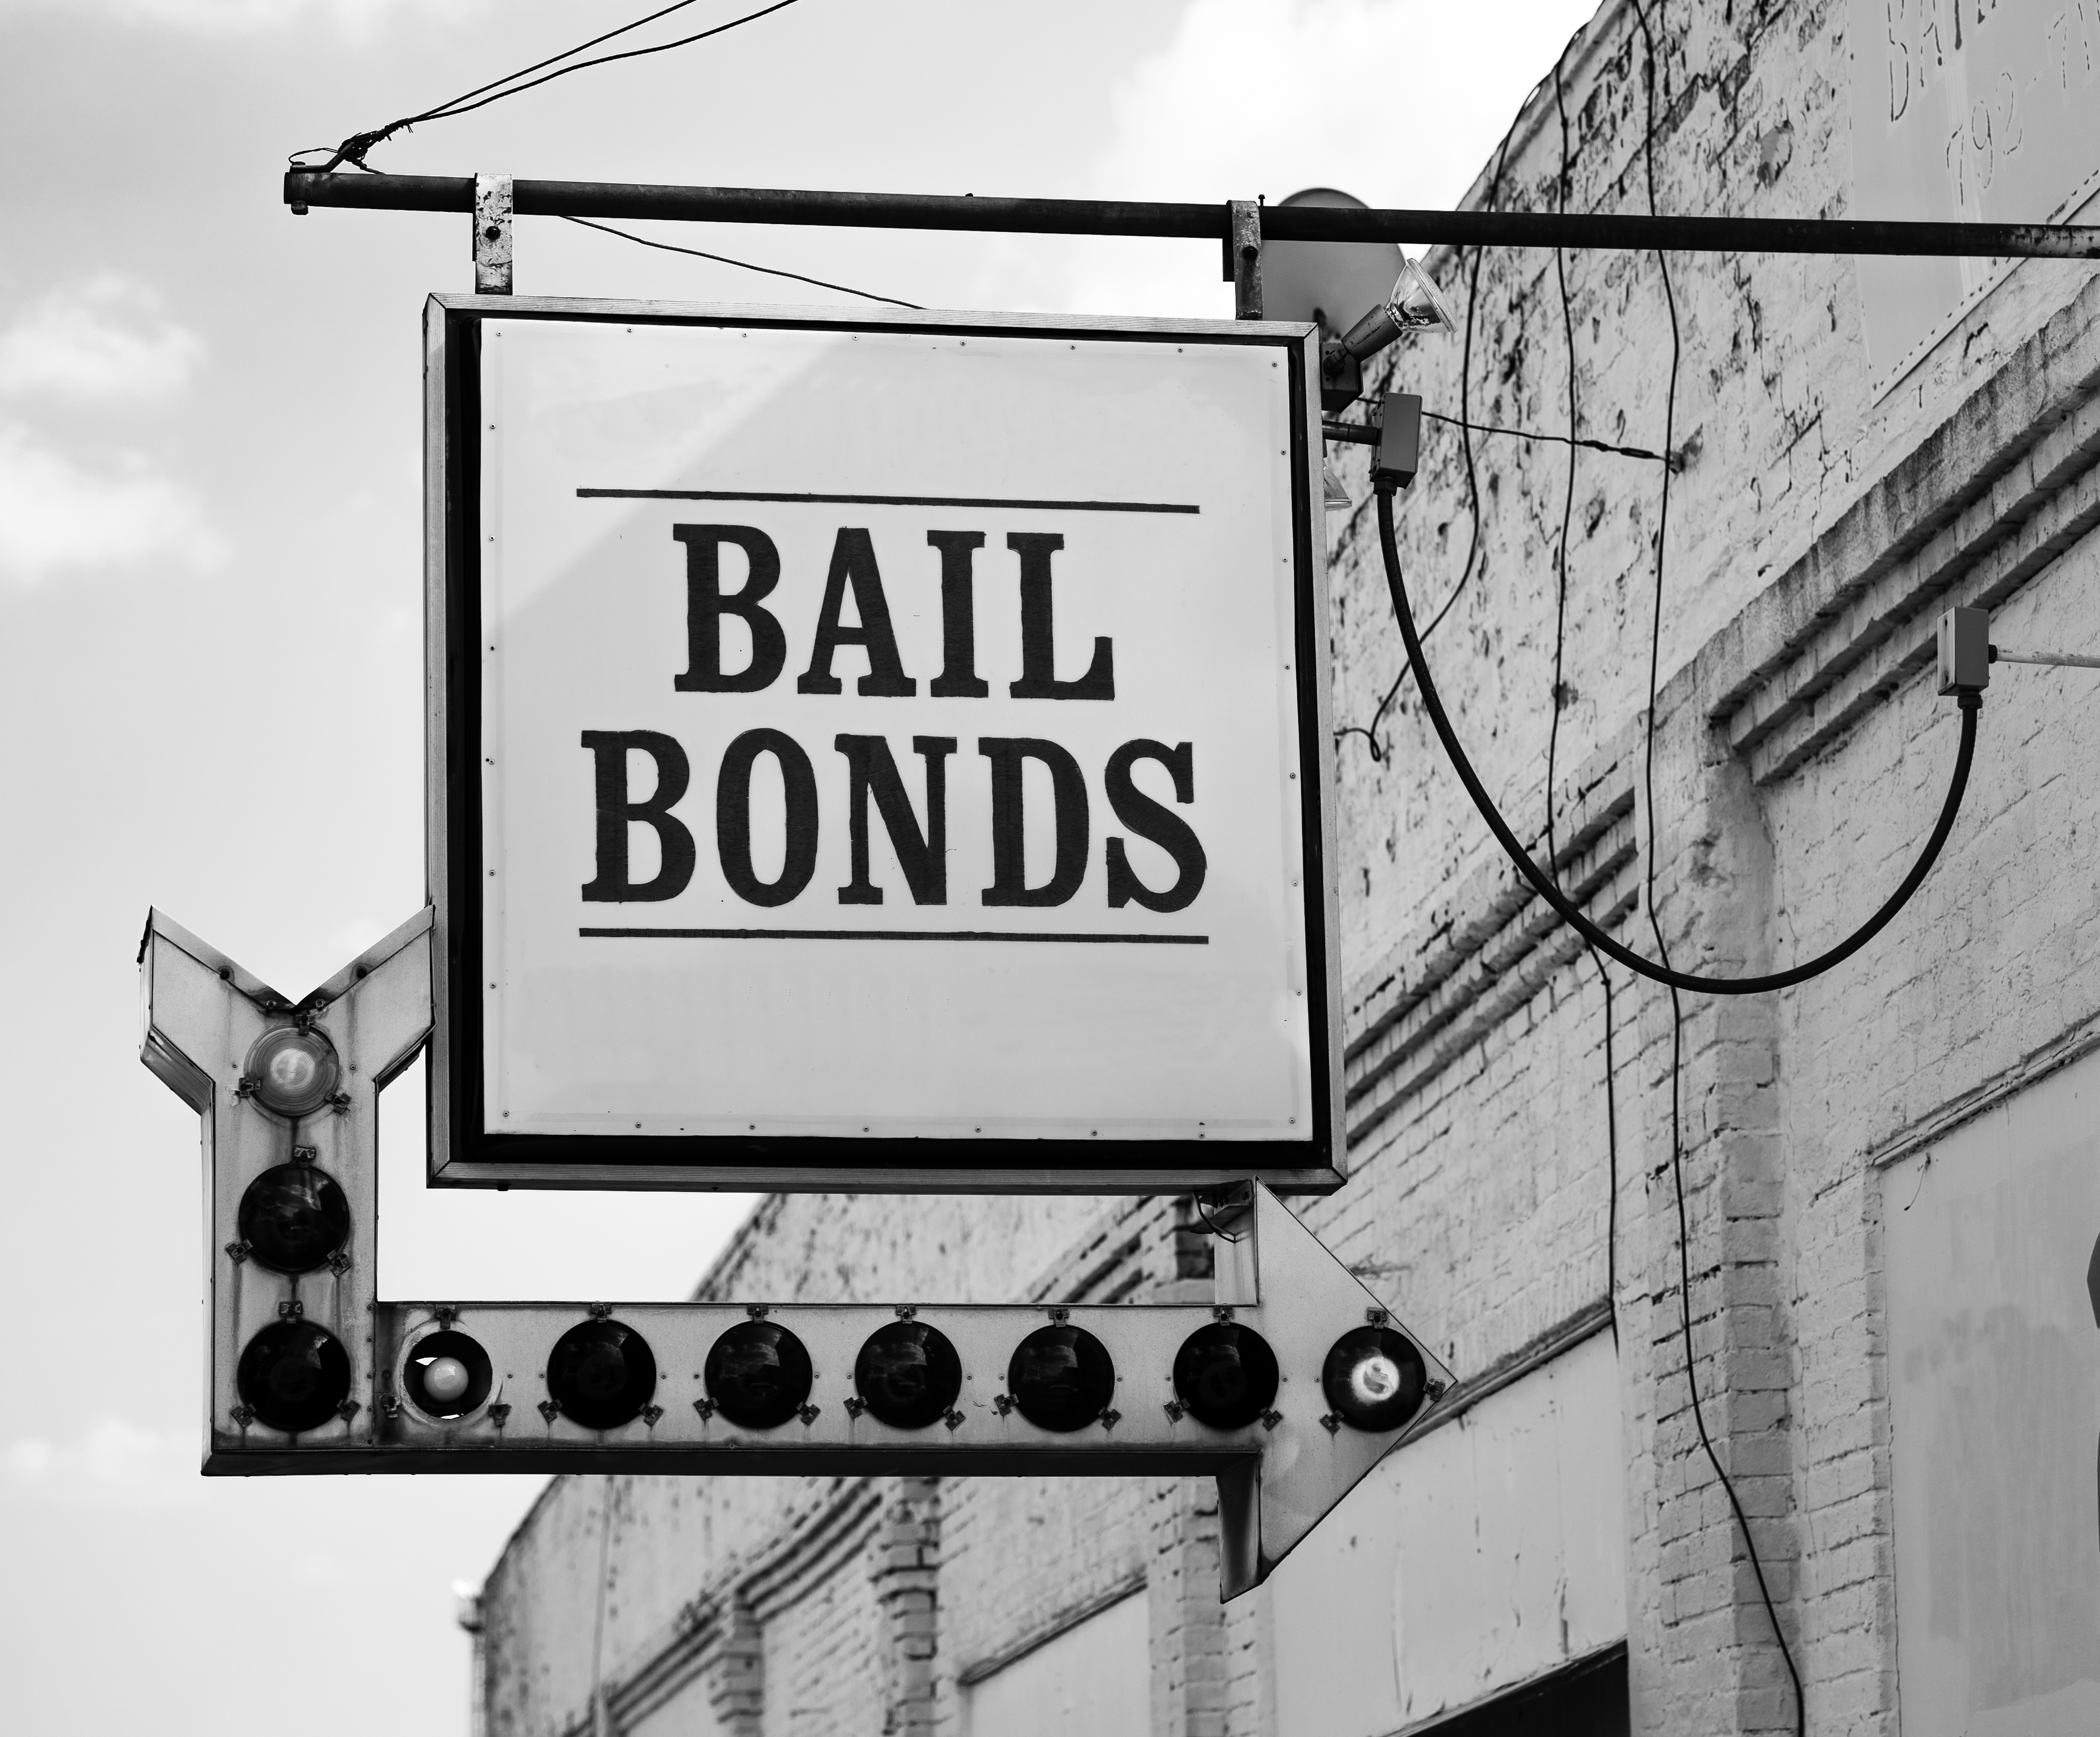 30 Plus year Bail Bonds Company For Sale